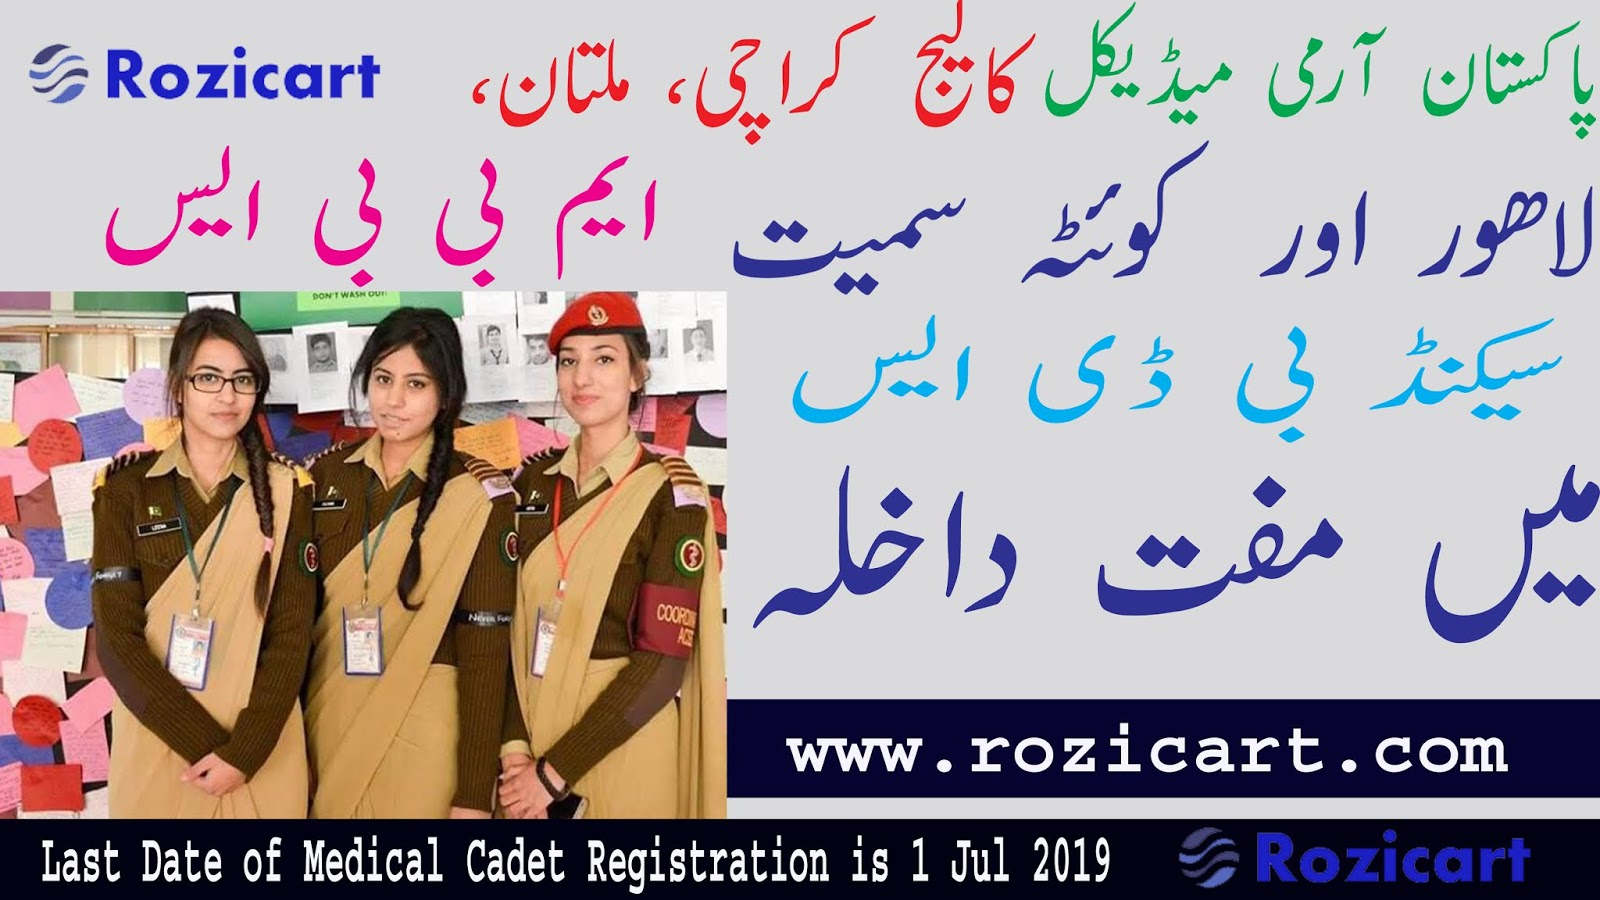 Rozicart - The Govt of Pakistan latest Jobs and Private jobs